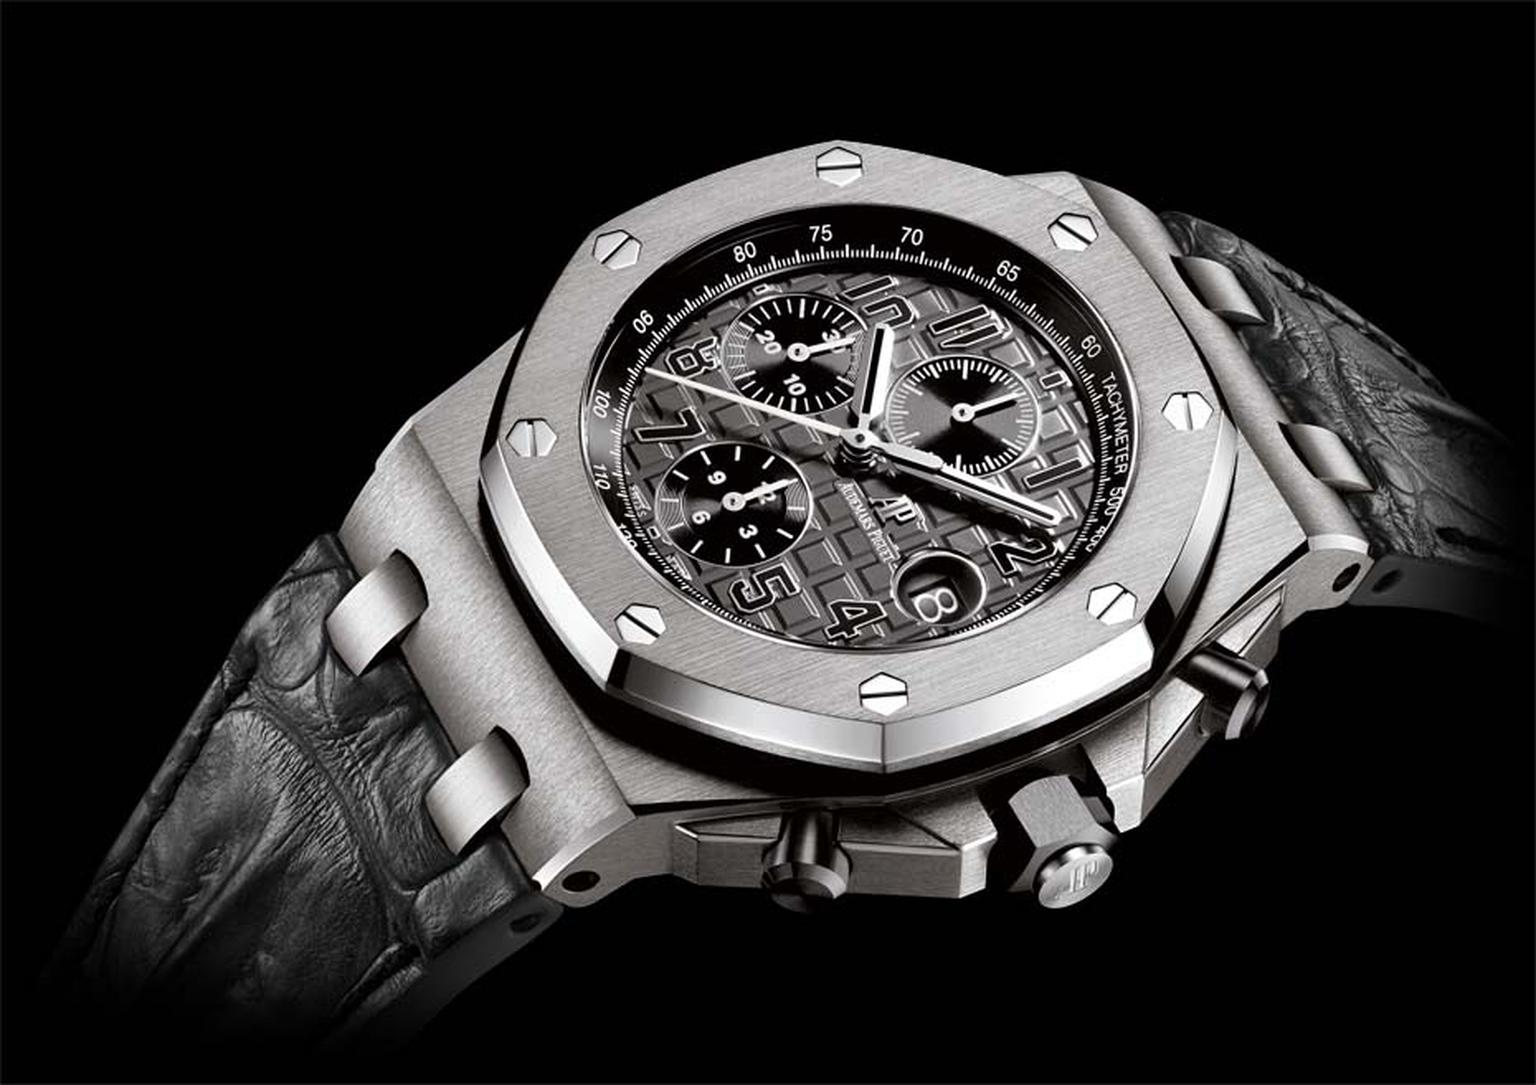 Audemars Piguet Royal Oak Offshore chronograph watch featuring a steel case, grey dial with a 'Méga Tapisserie' and grey alligator strap (£19,000).